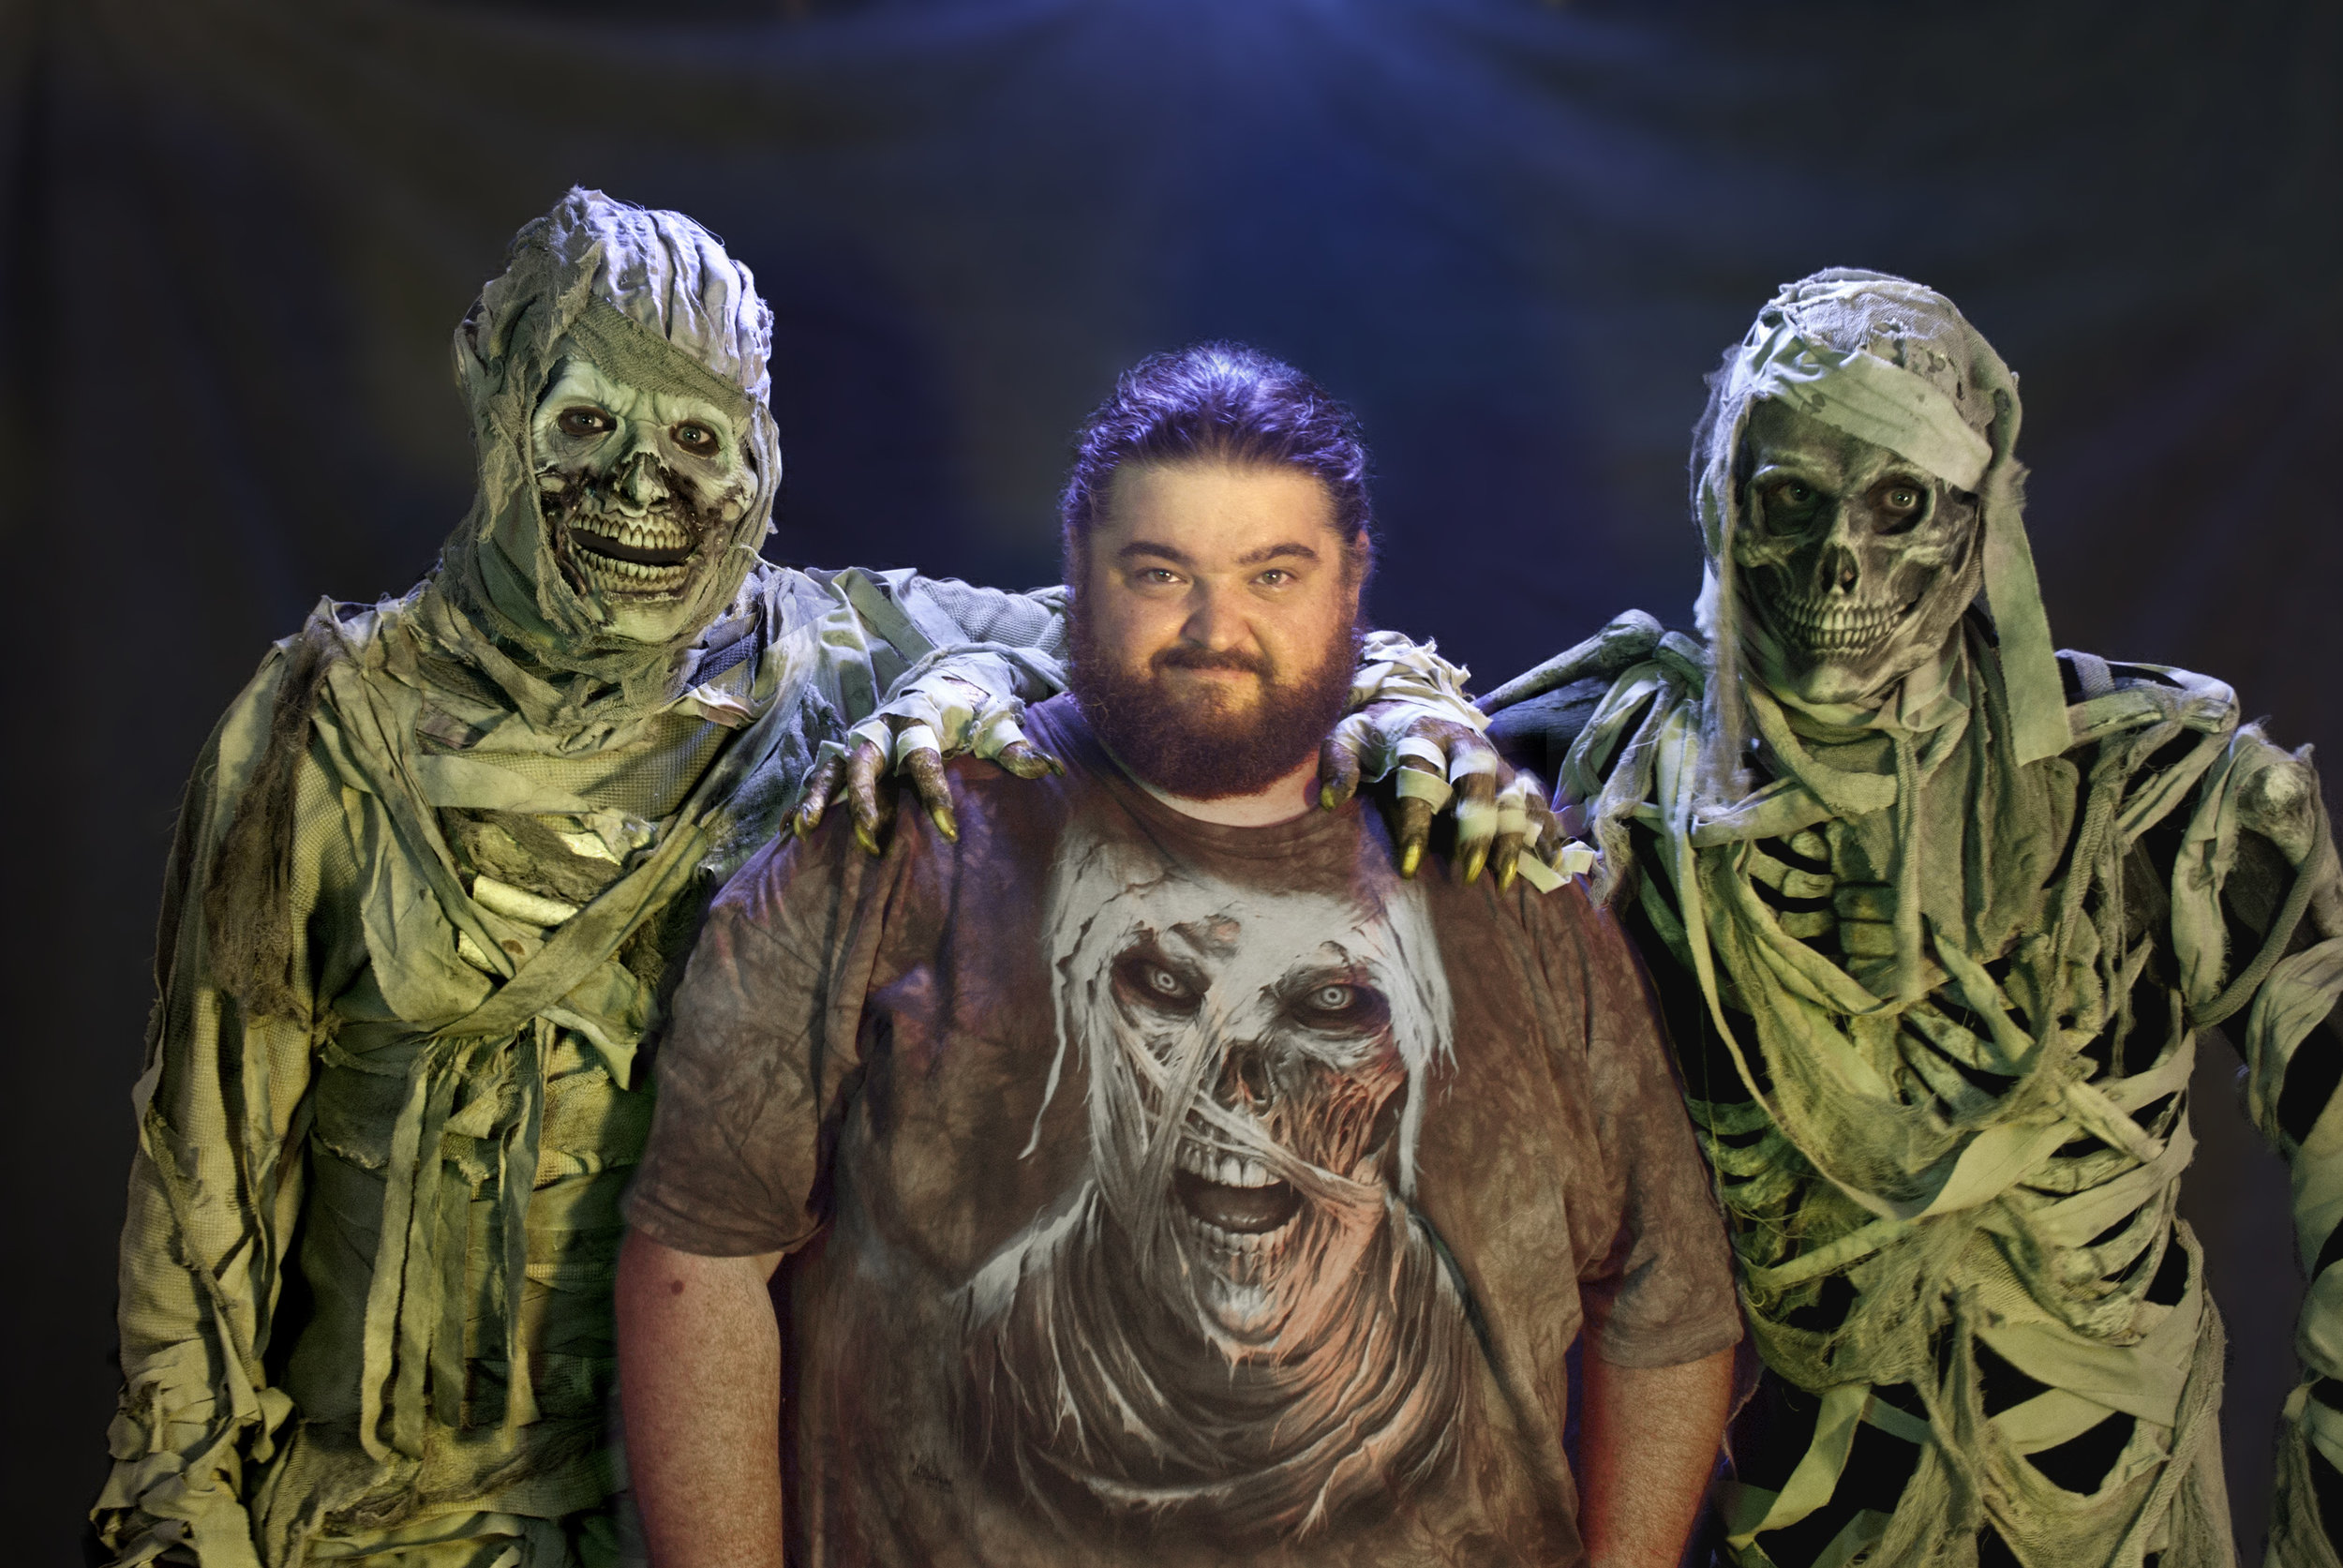 Musings by the Glass - Spooky Wines with Jorge Garcia - Skeleton Key Hawaii Mummies and Jorge Garcia